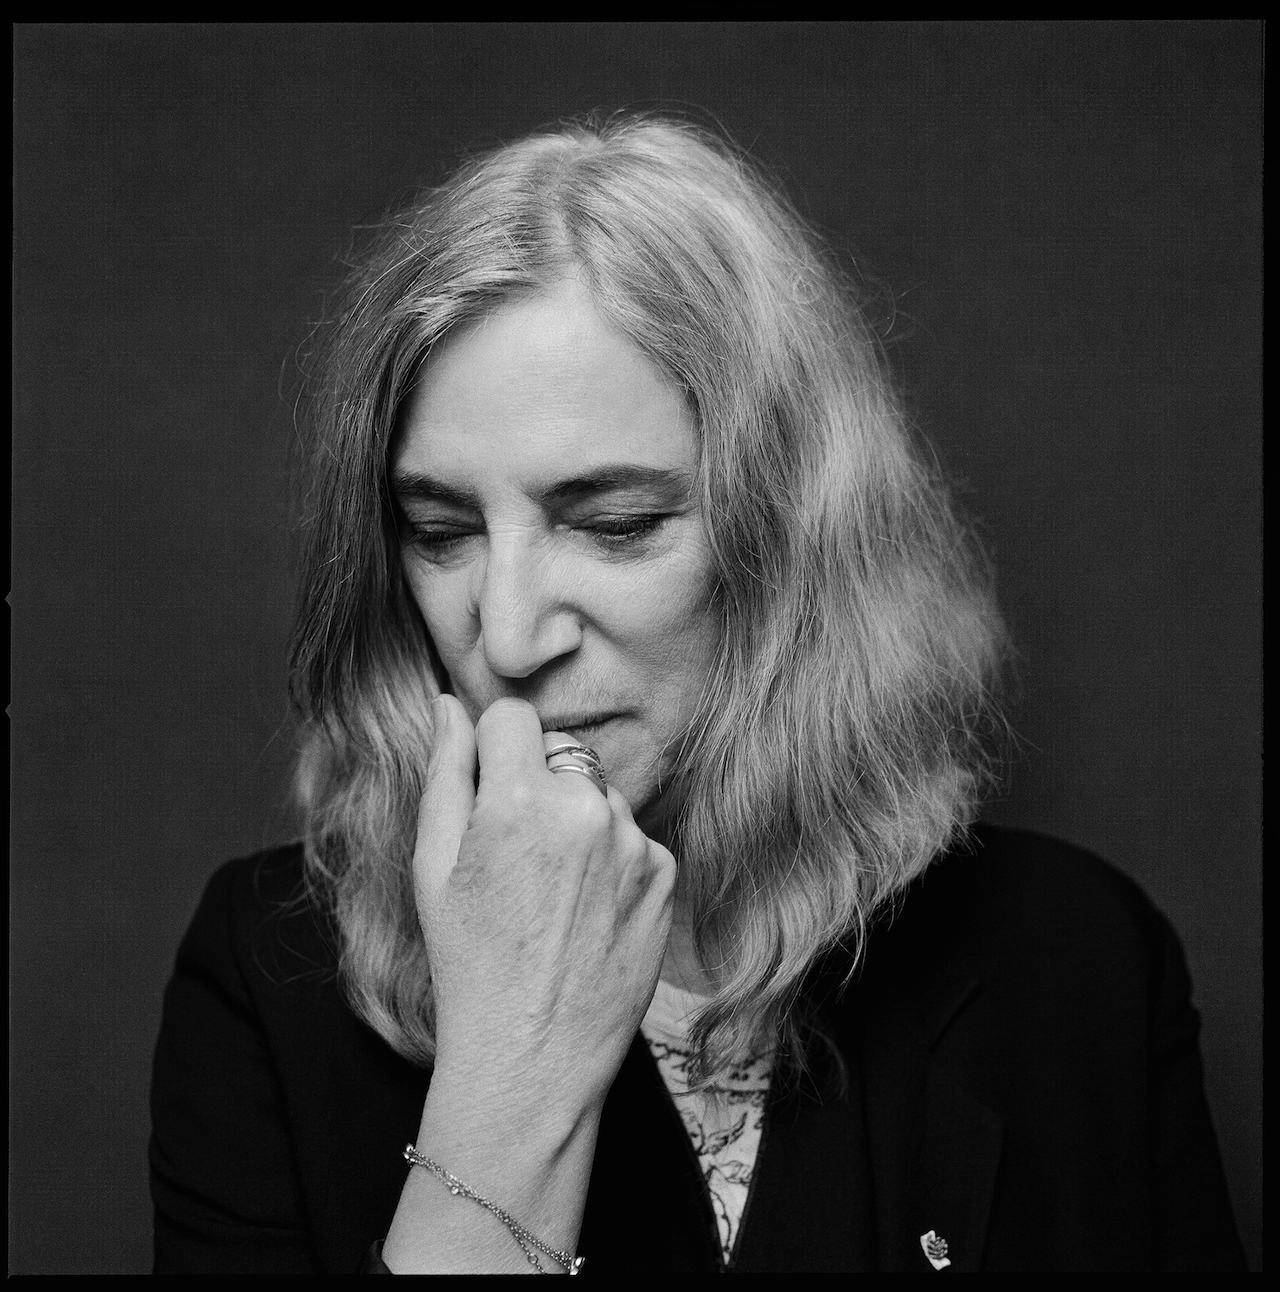 Patti Smith (all images courtesy of Knopf)